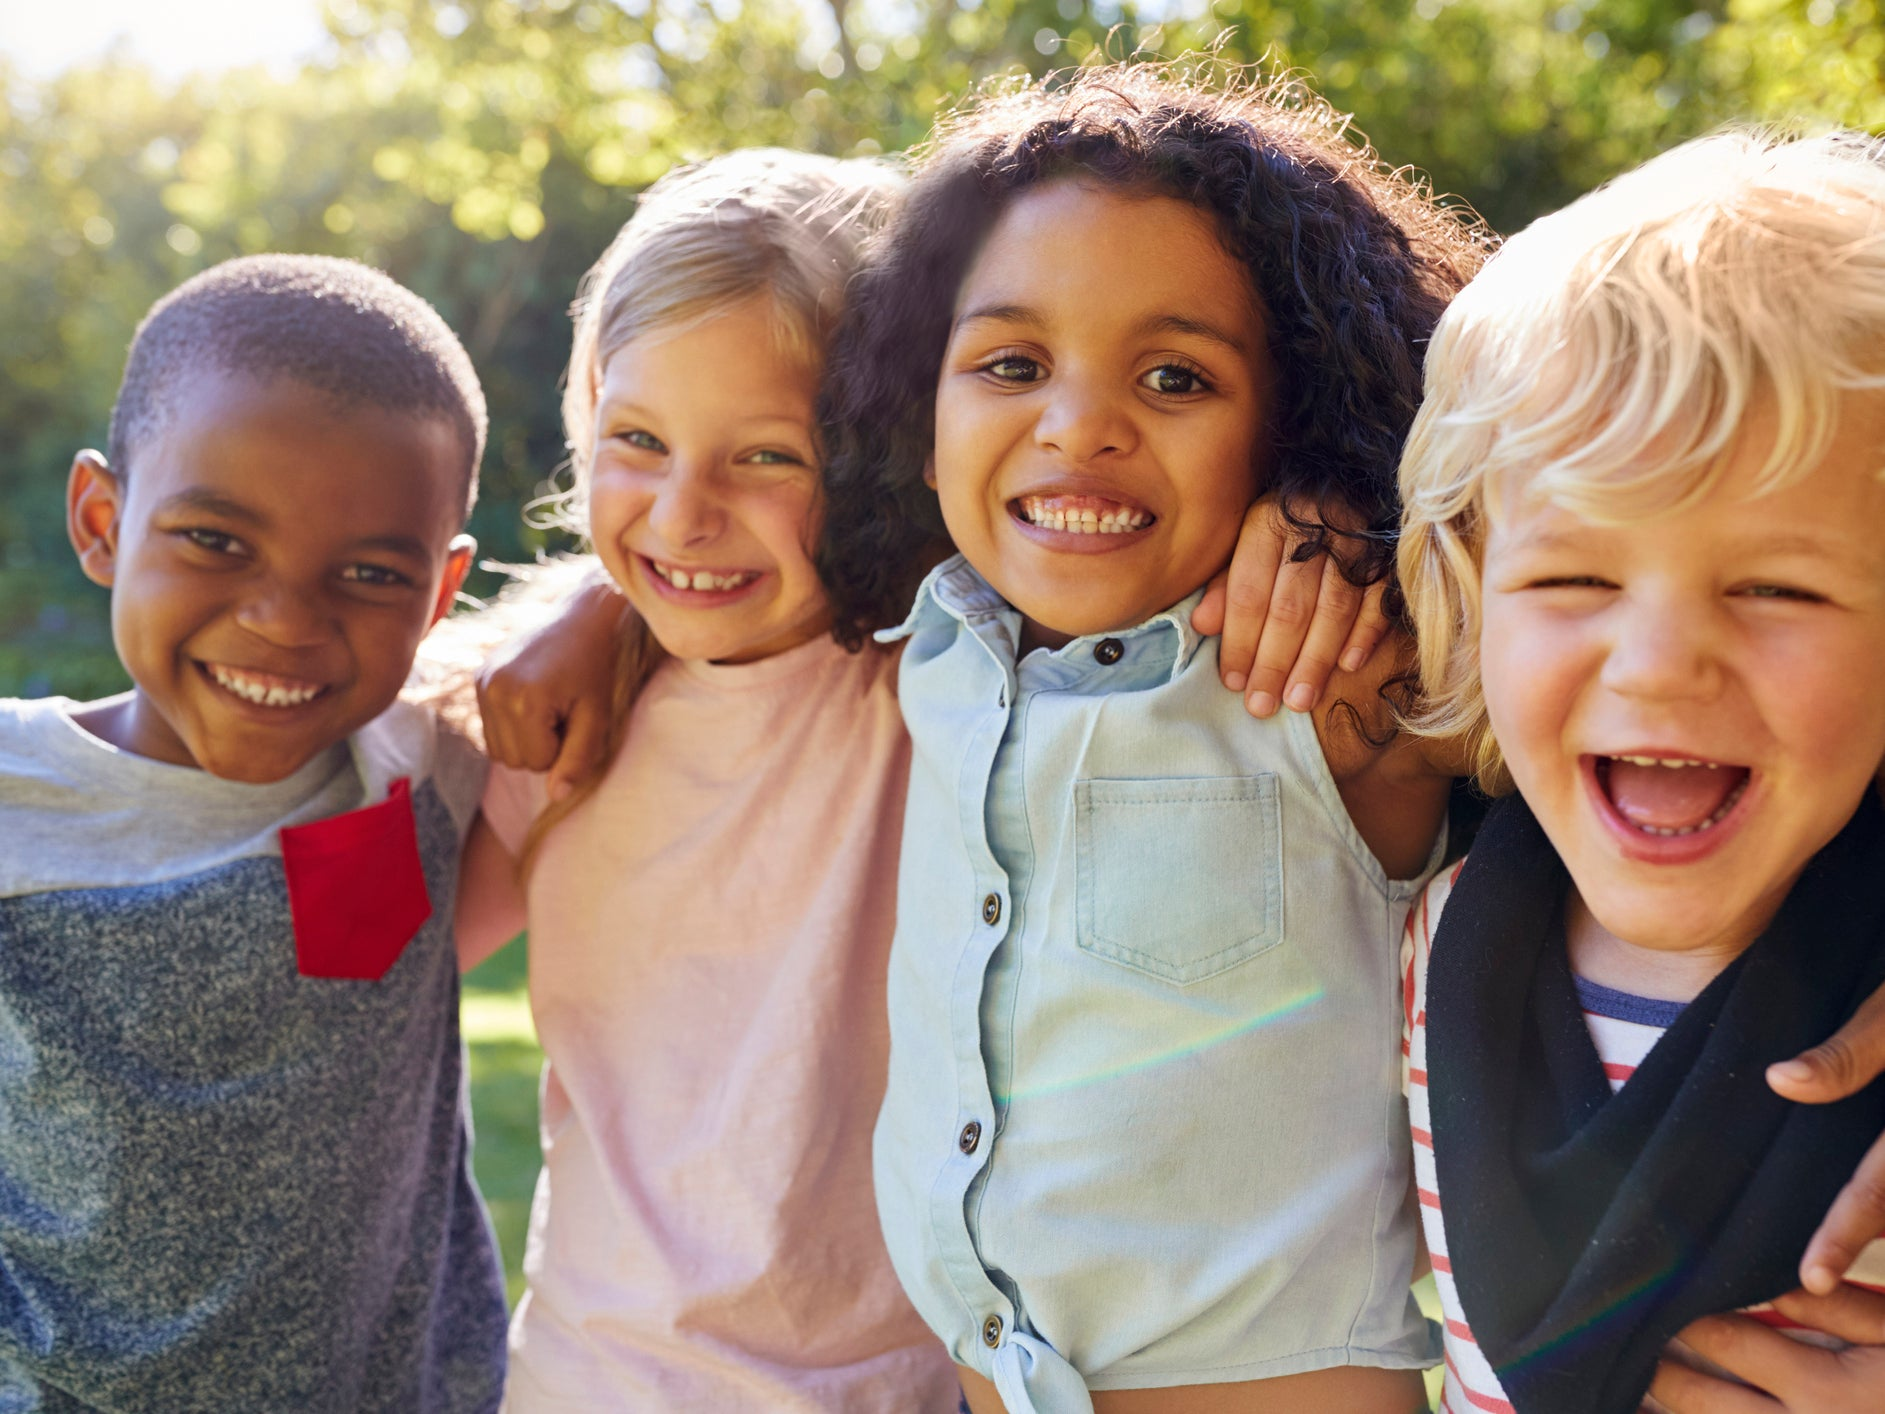 World Children's Day 2019: What is it and why is it celebrated?